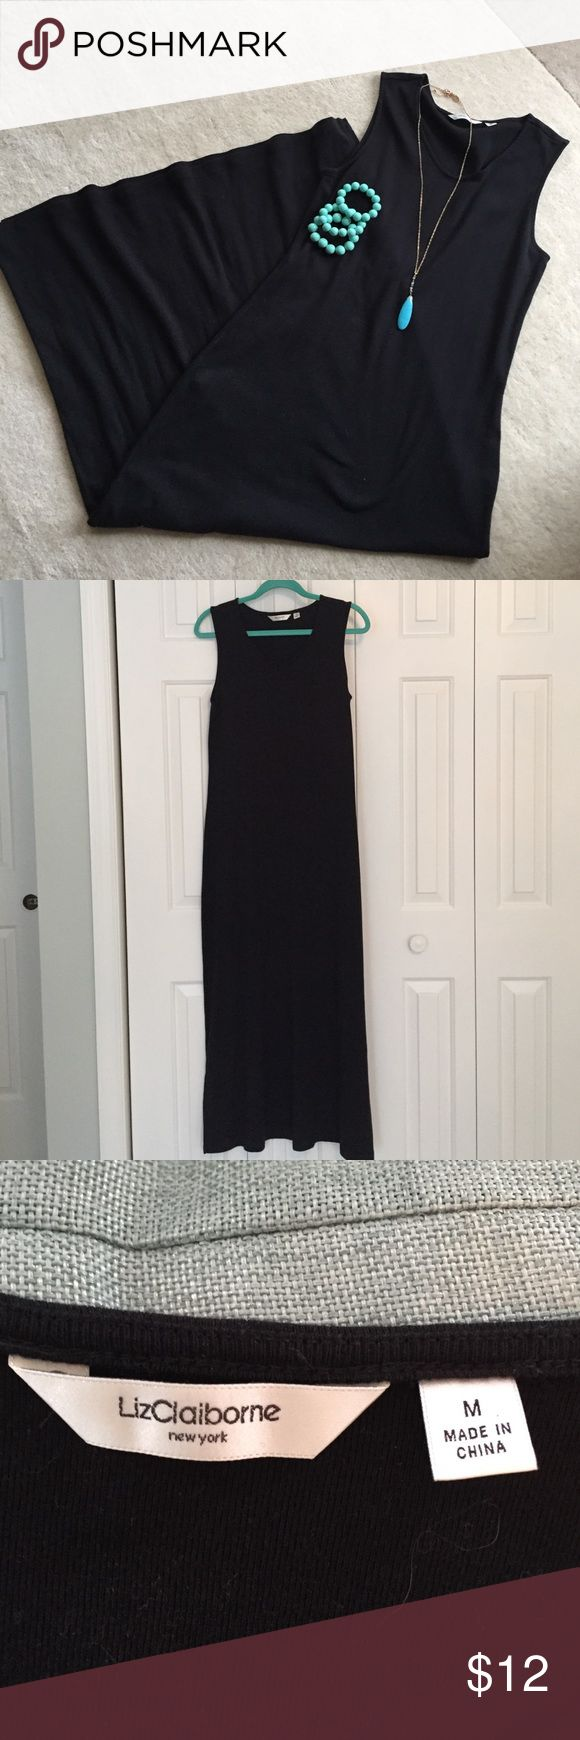 """Liz Claiborne Mew York Black Maxi Dress Liz Claiborne v-neck black maxi dress. 100% cotton, machine wash. Very good condition. Only worn a couple times. Semi-fitted & arm holes fit nicely so no bra showing. 8"""" bottom side slits. You can do so much with this dress. Liz Claiborne Dresses Maxi"""